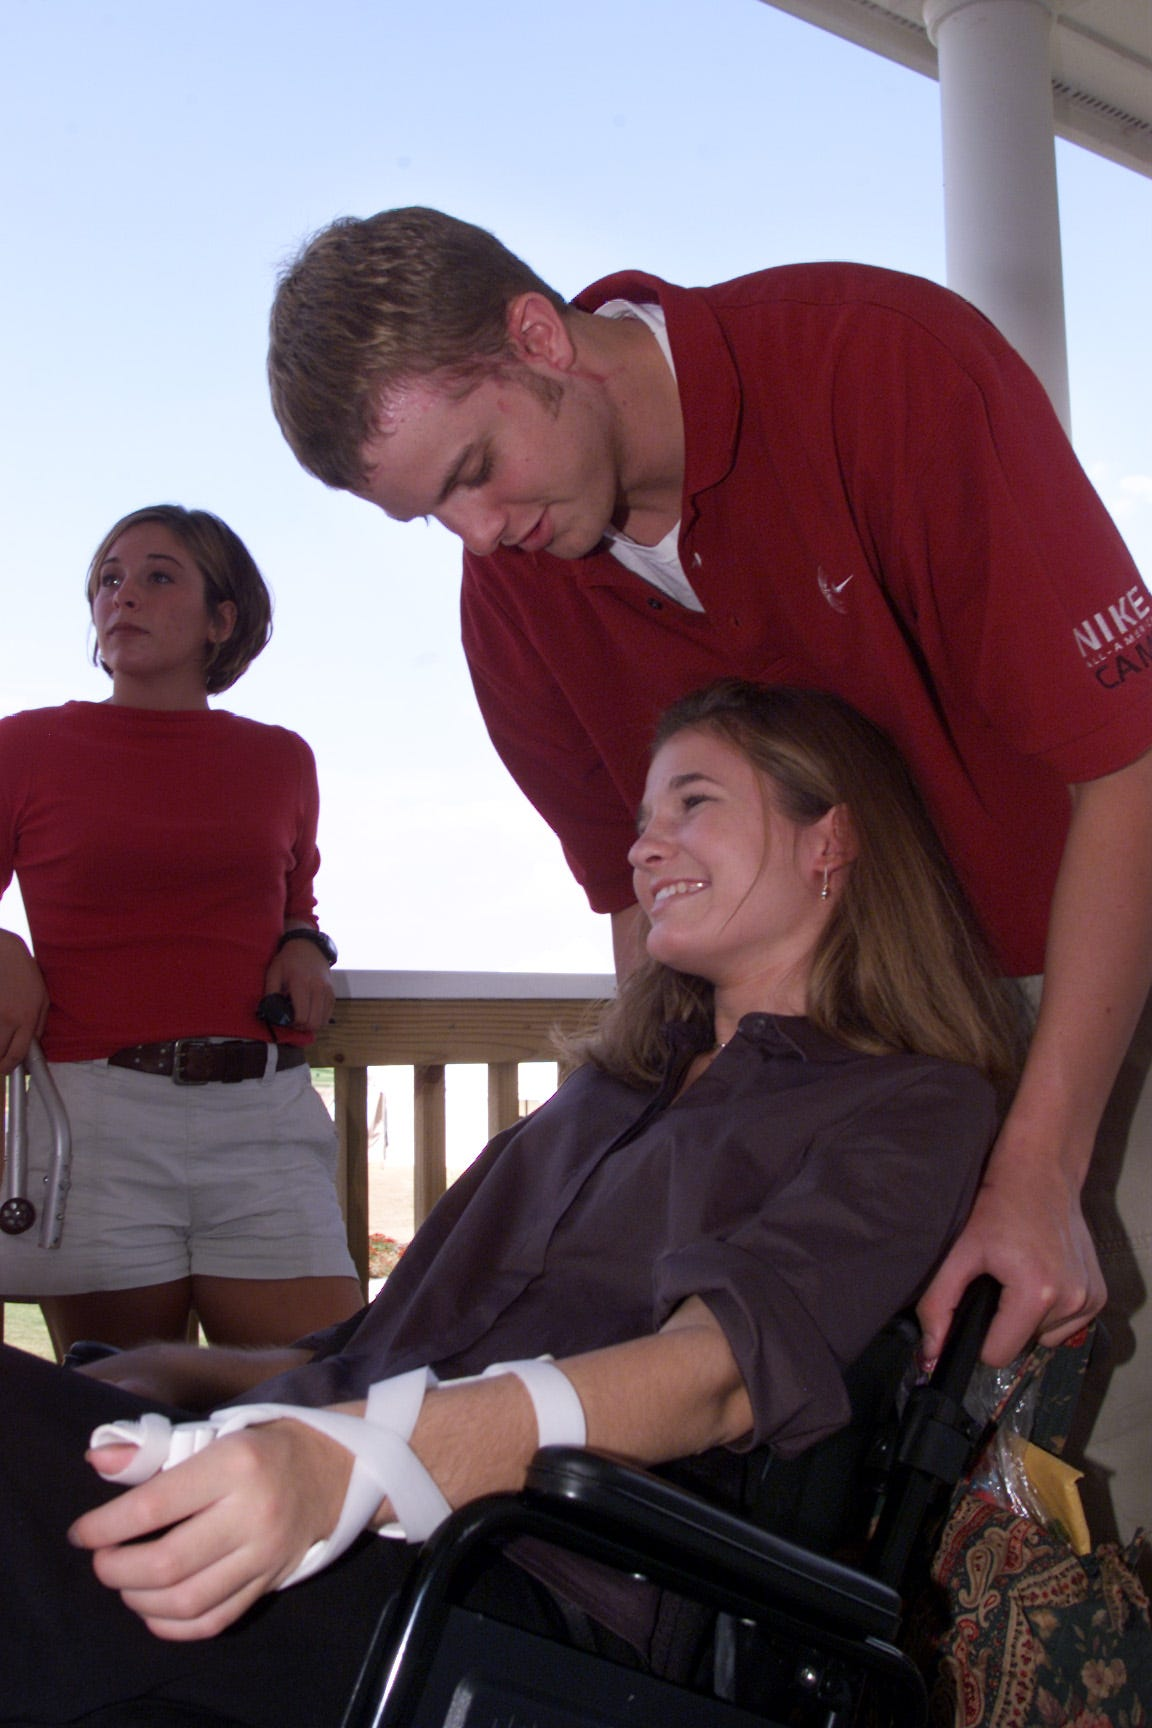 Luke Recker with Kelly Craig who became wheelchair bound after the accident.